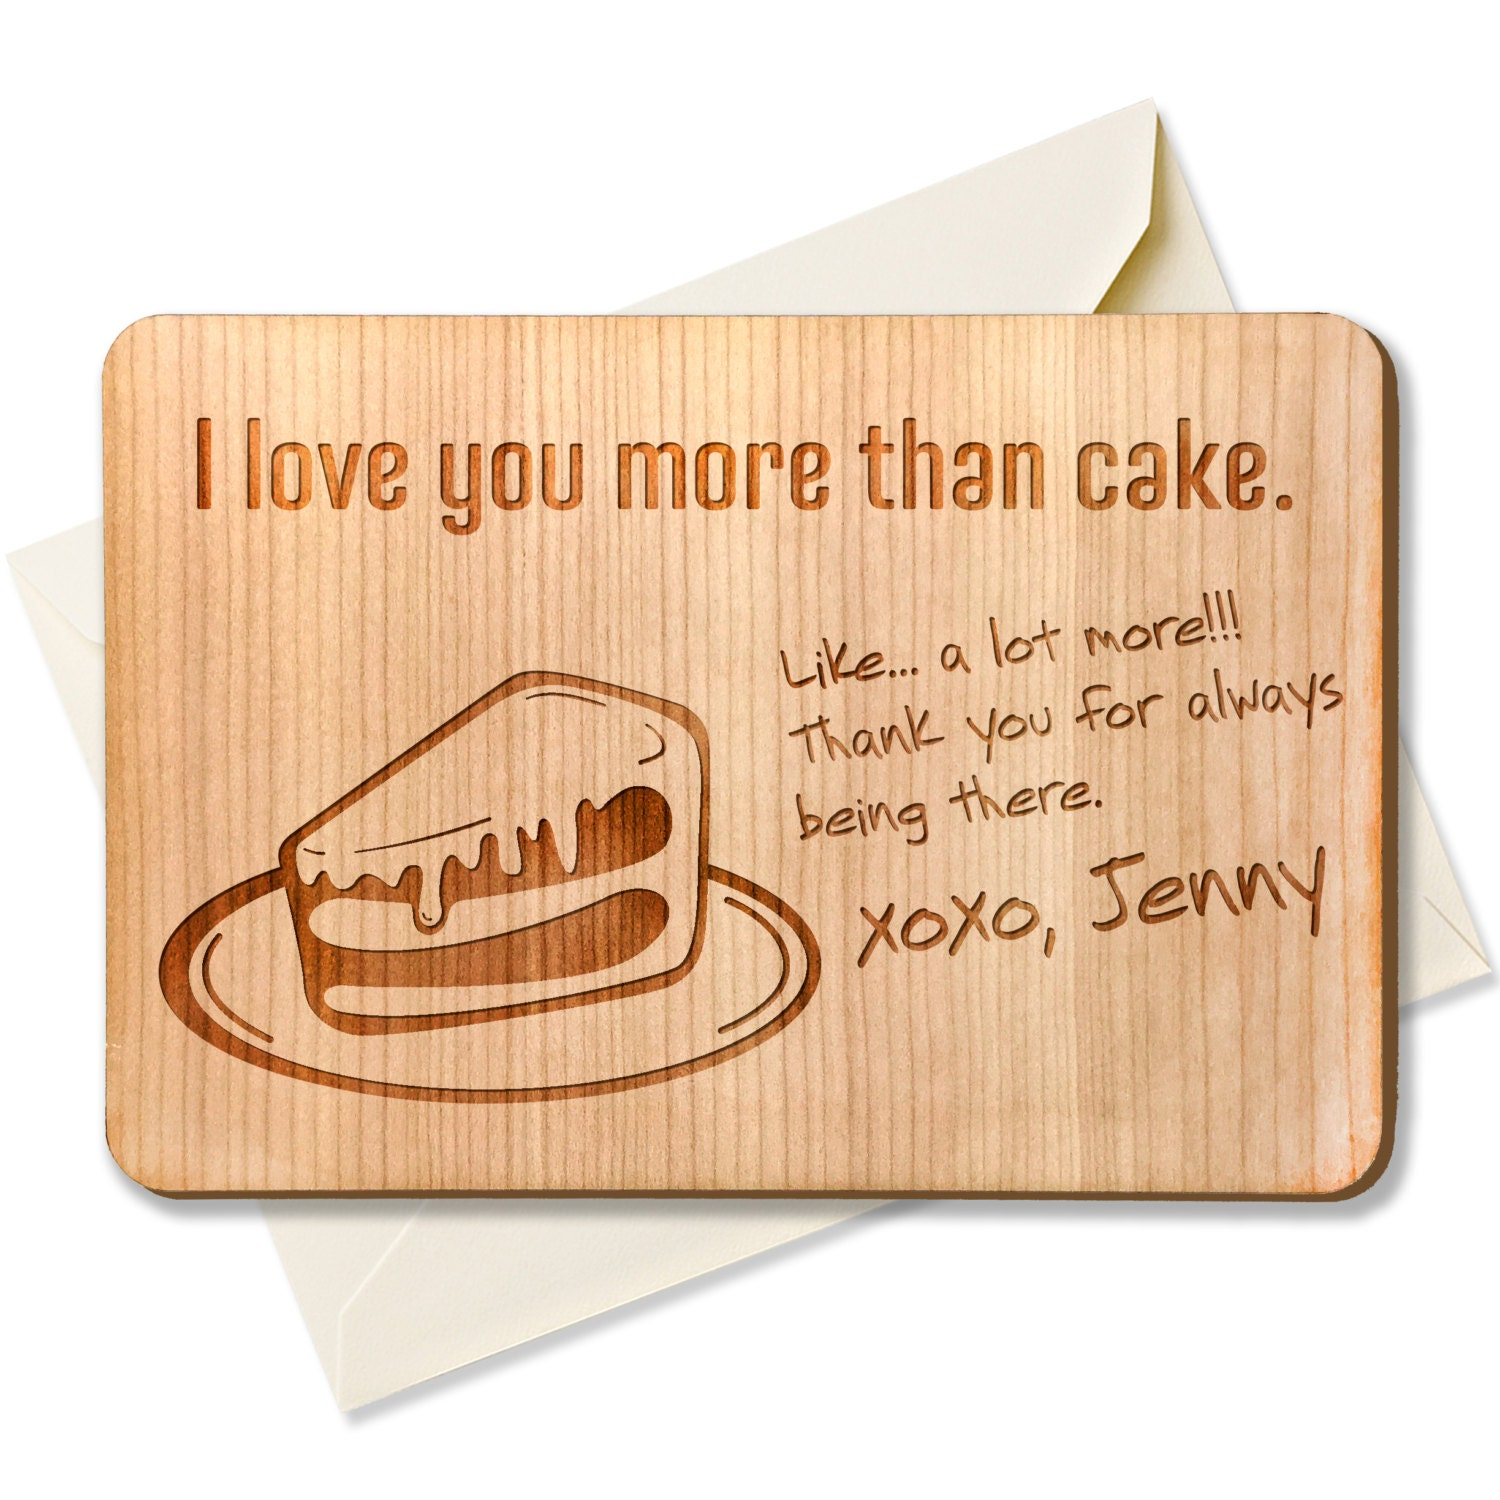 personalized birthday wood greeting card fridge magnet 4x6 love